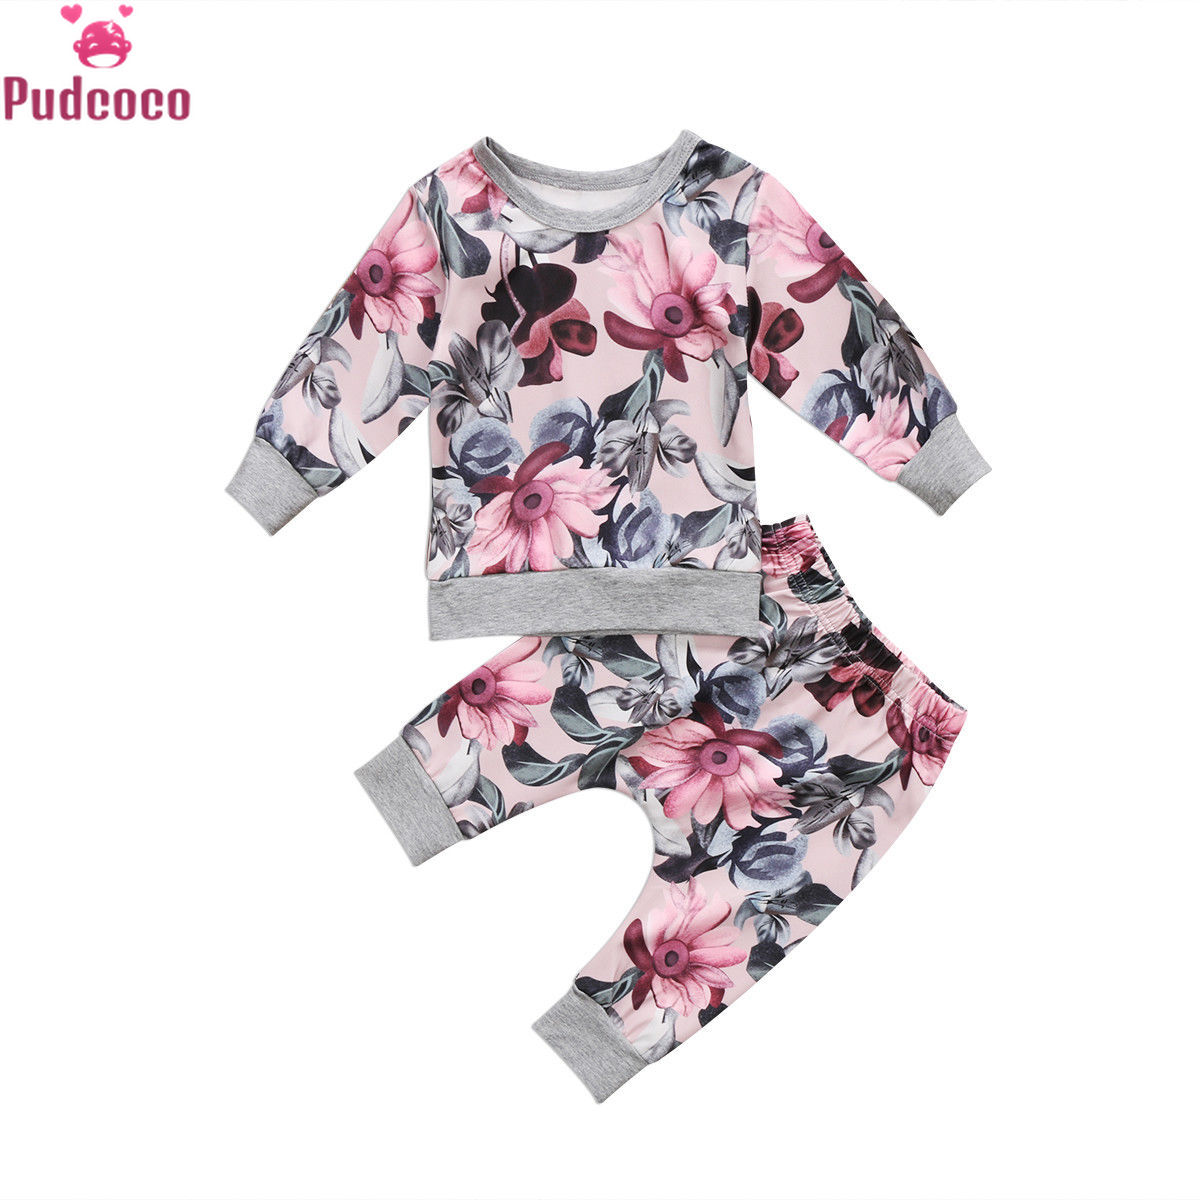 2019 Autumn Winter 2pcs Baby Clothing Newborn Infant Baby Girls Long Sleeve Print T-shirt Tops+Floral Pants Outfits Set